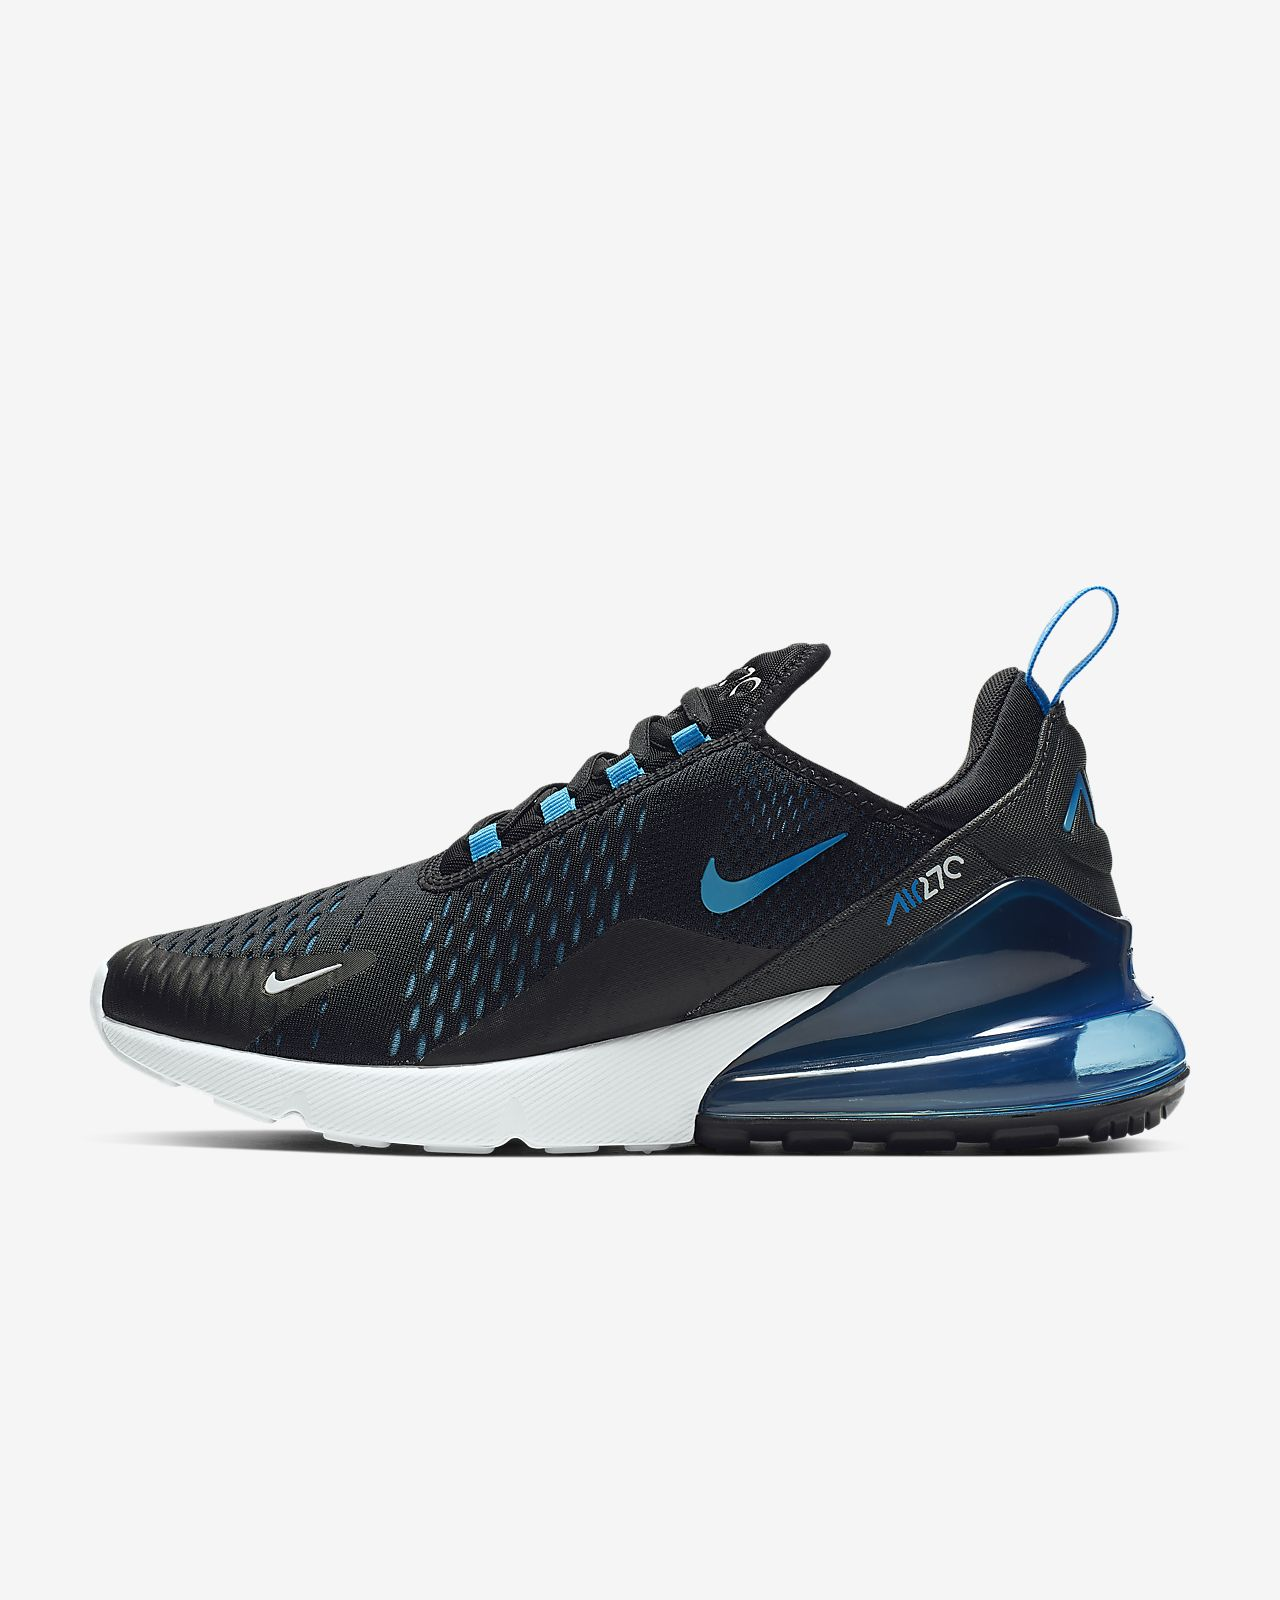 meet 98d59 9df3f Men s Shoe. Nike Air Max 270